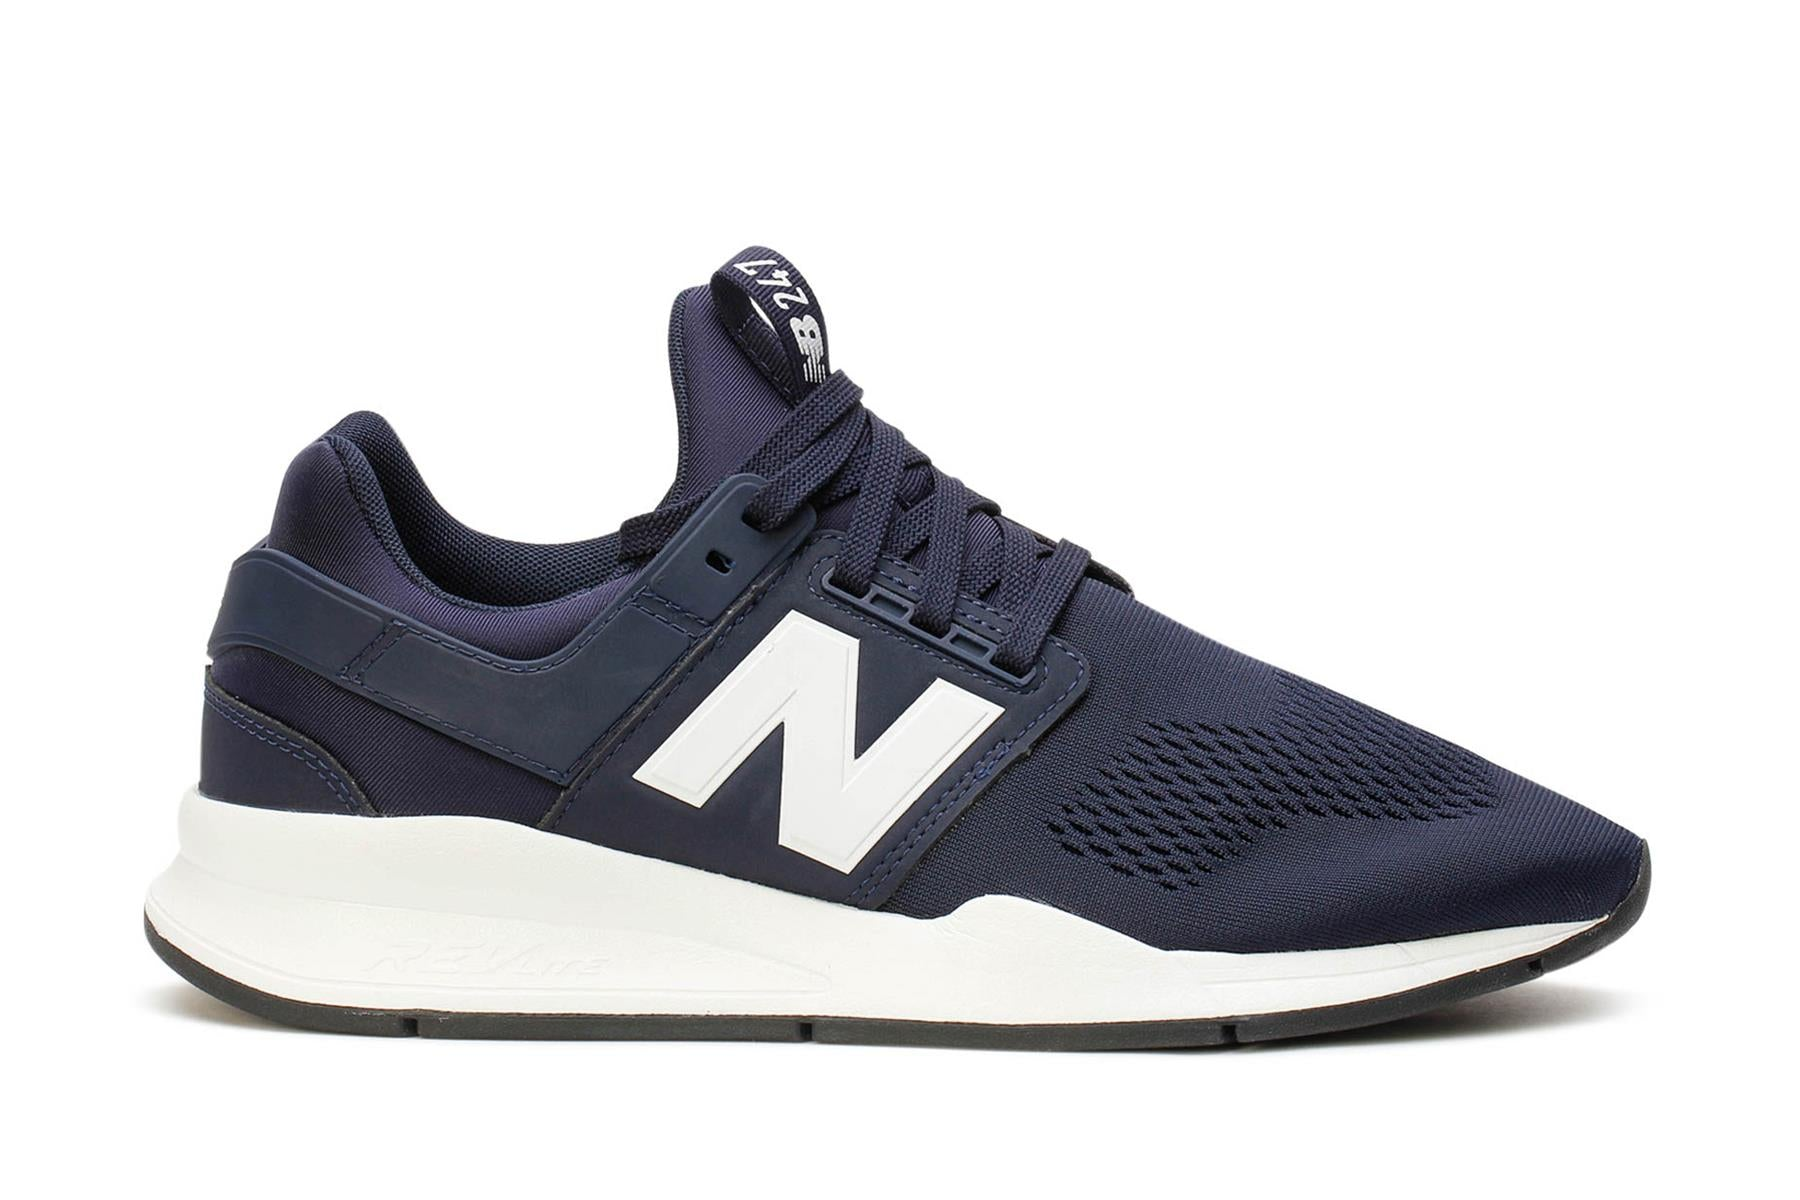 New Balance Men's Sneakers 247 Sport Style Navy White MS247EN